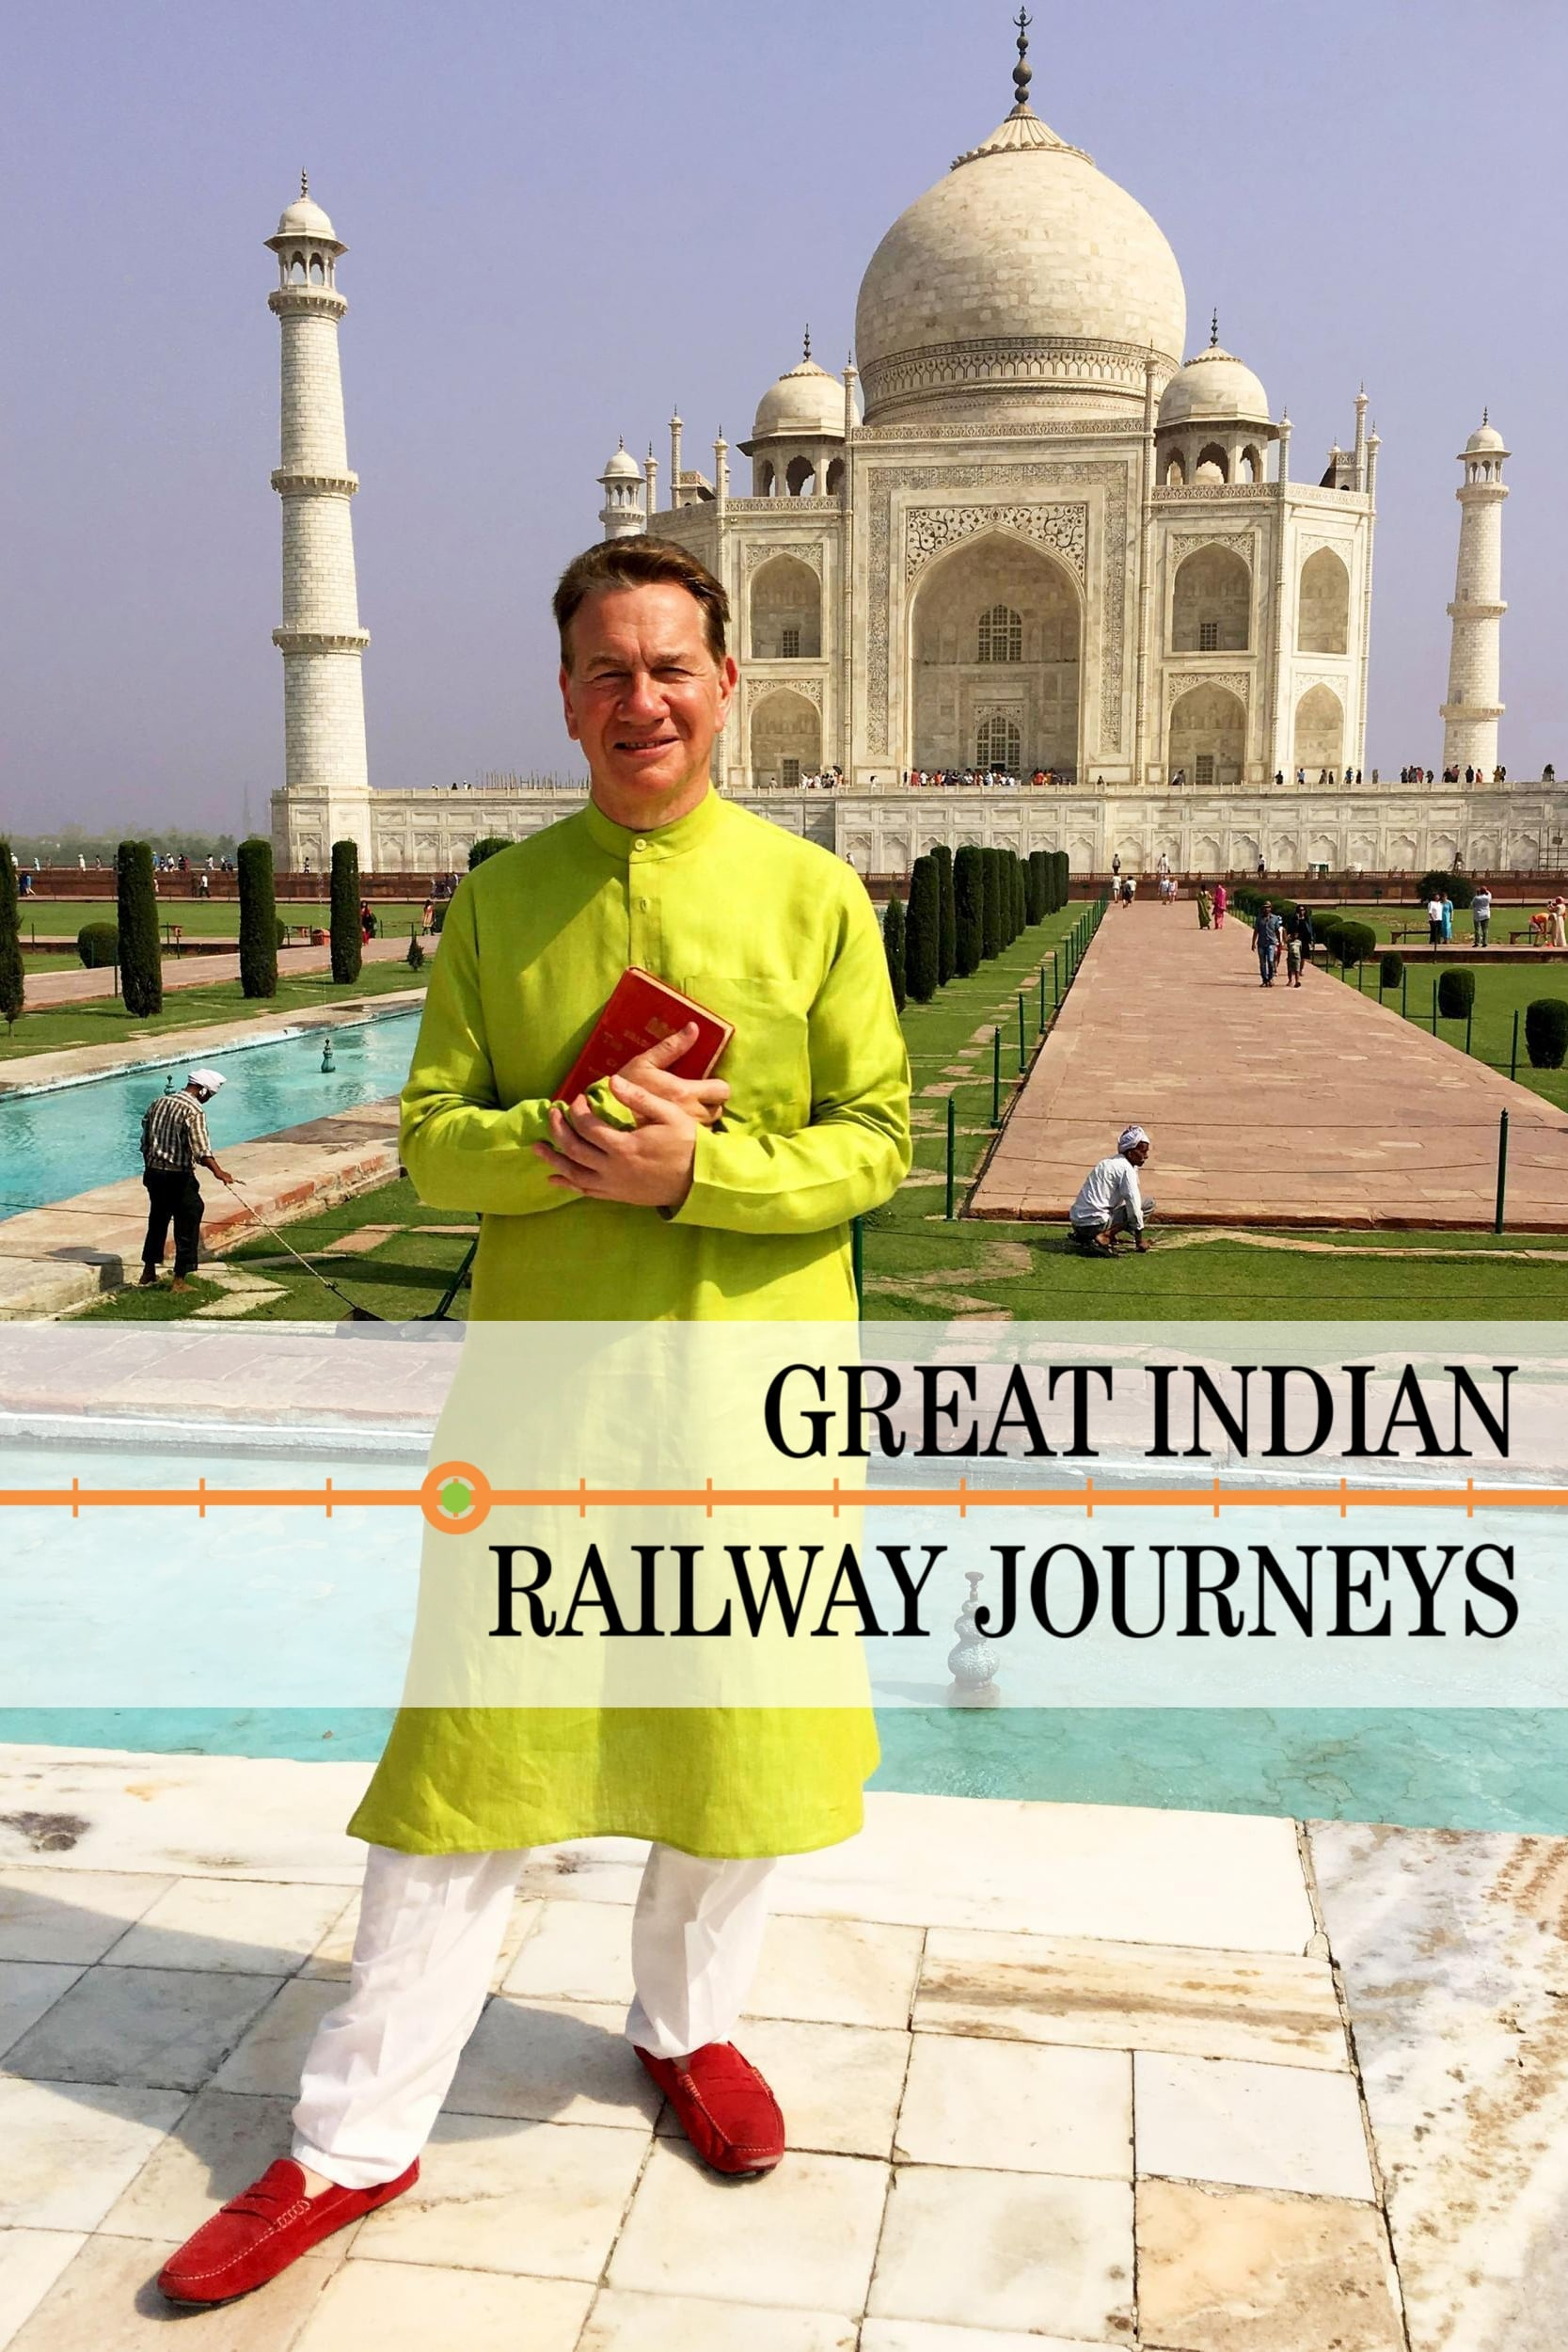 Great Indian Railway Journeys (2018)